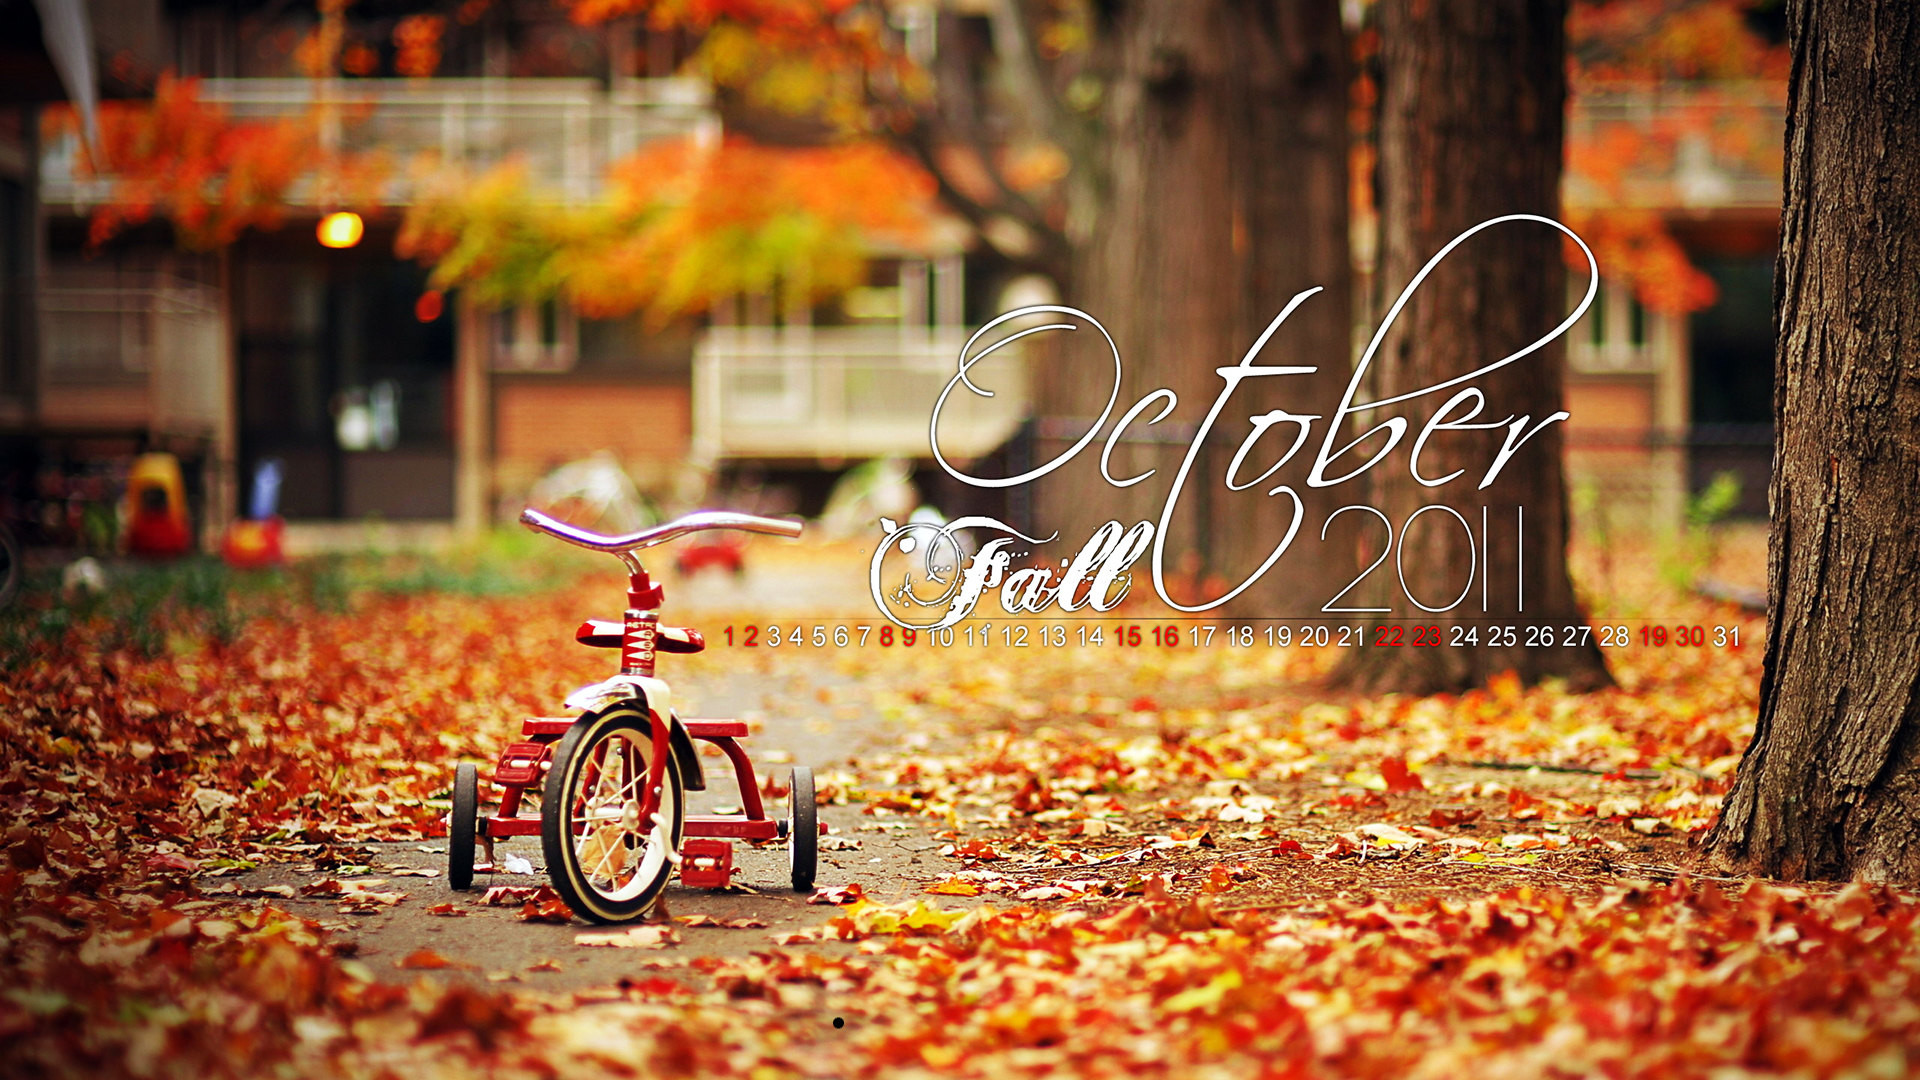 1920x1080 Download: Autumn Fall October Calendar HD Wallpaper Resolution: 1920 x 1200  [1920 x 1080]